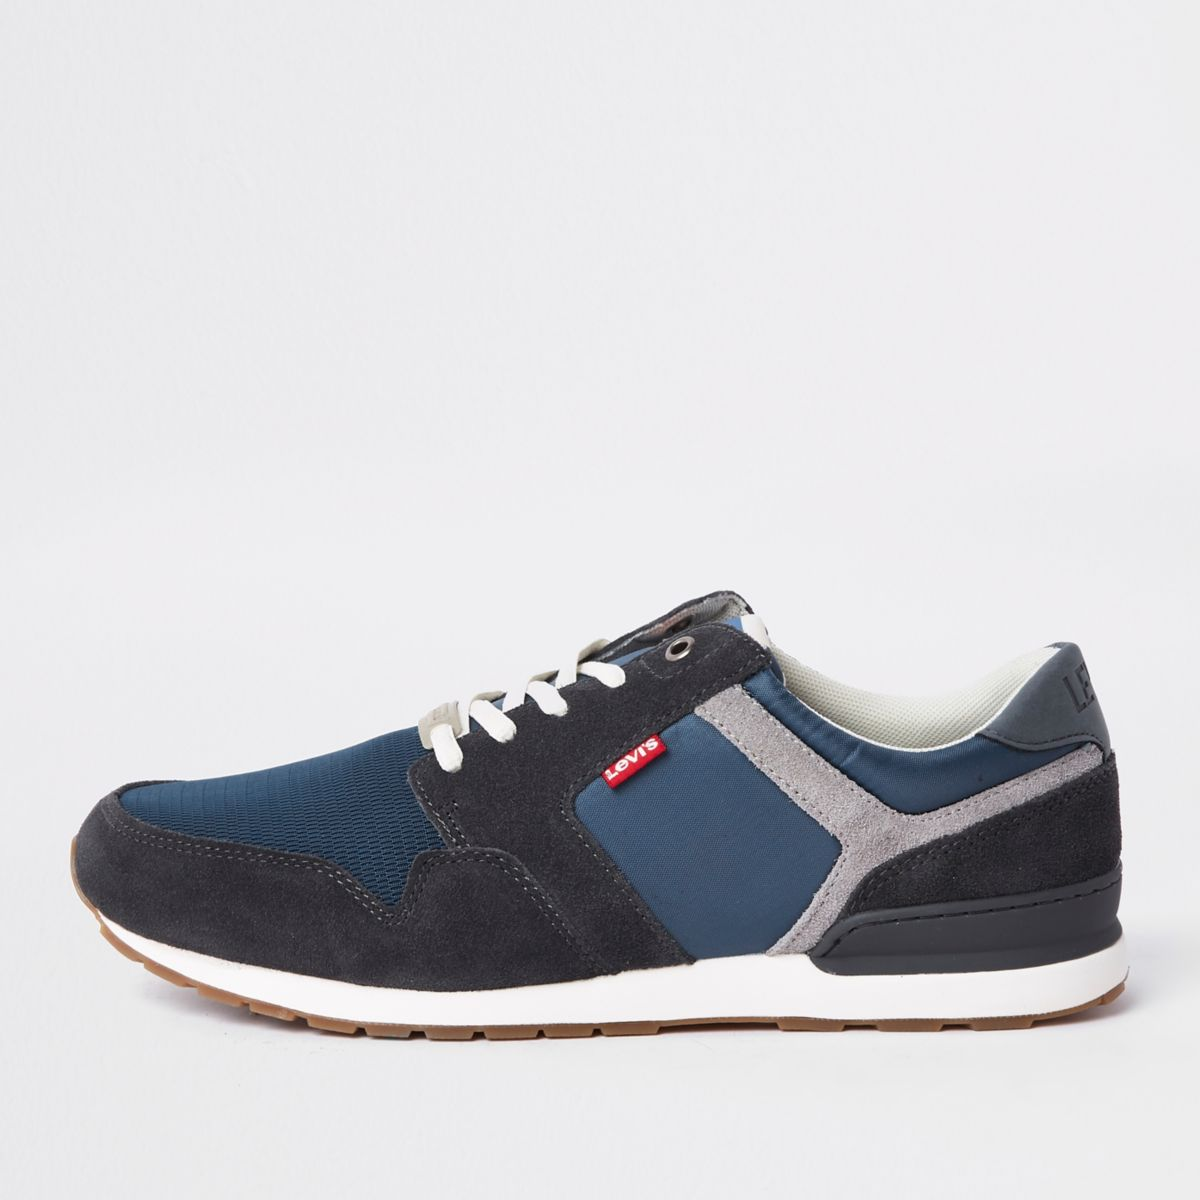 Levi's blue runner sneakers